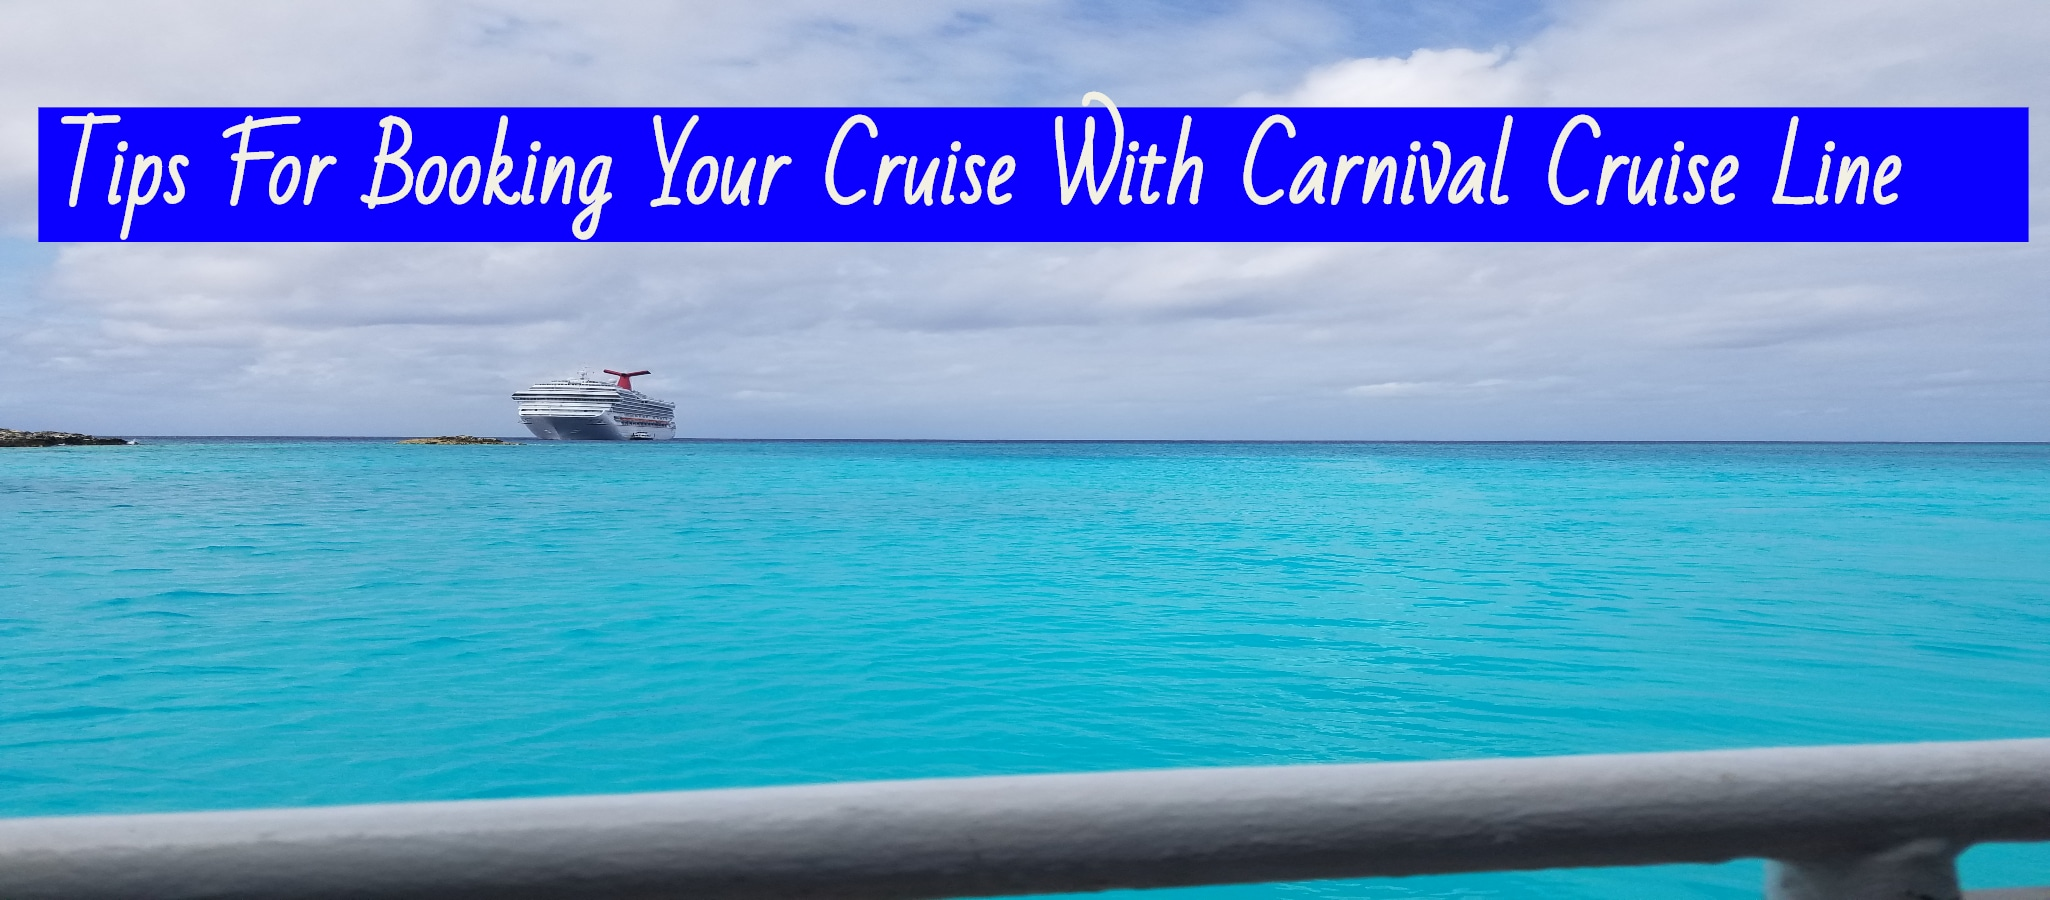 Tips For Booking A Cruise With Carnival Cruise Lines